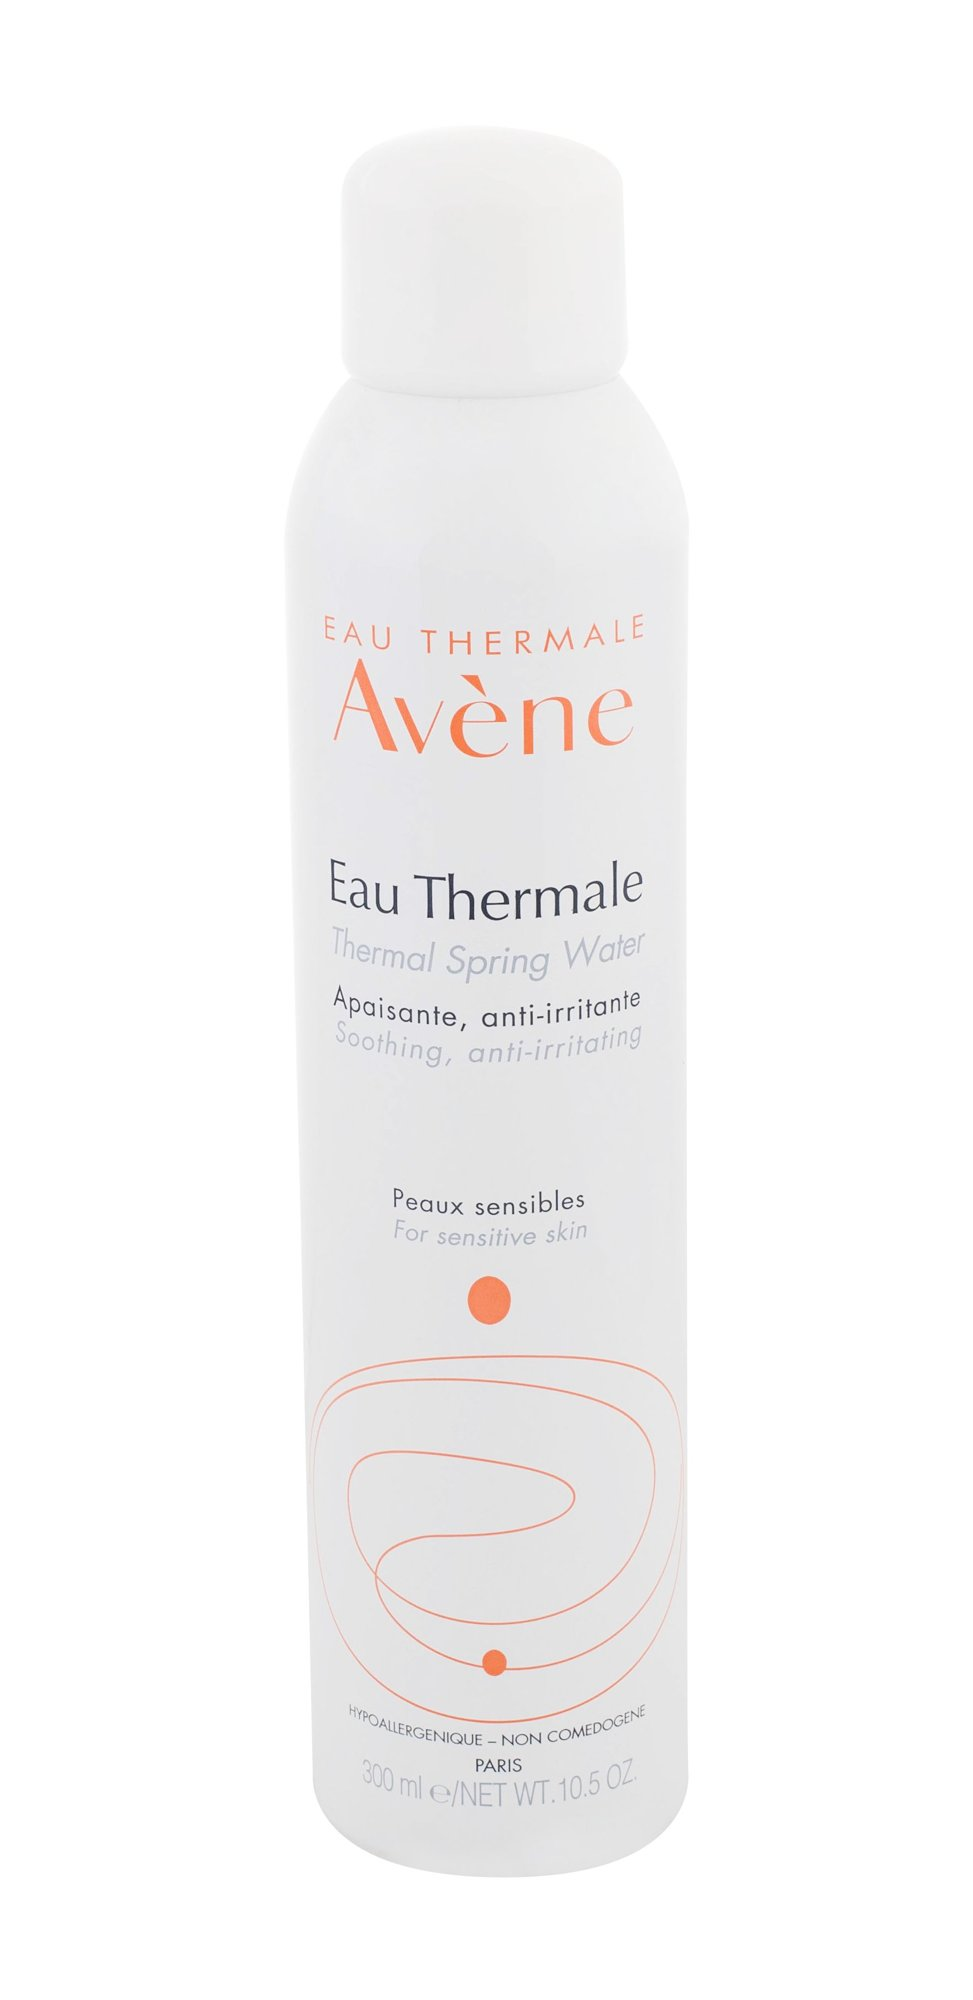 Avene Eau Thermale Facial Lotion 300ml